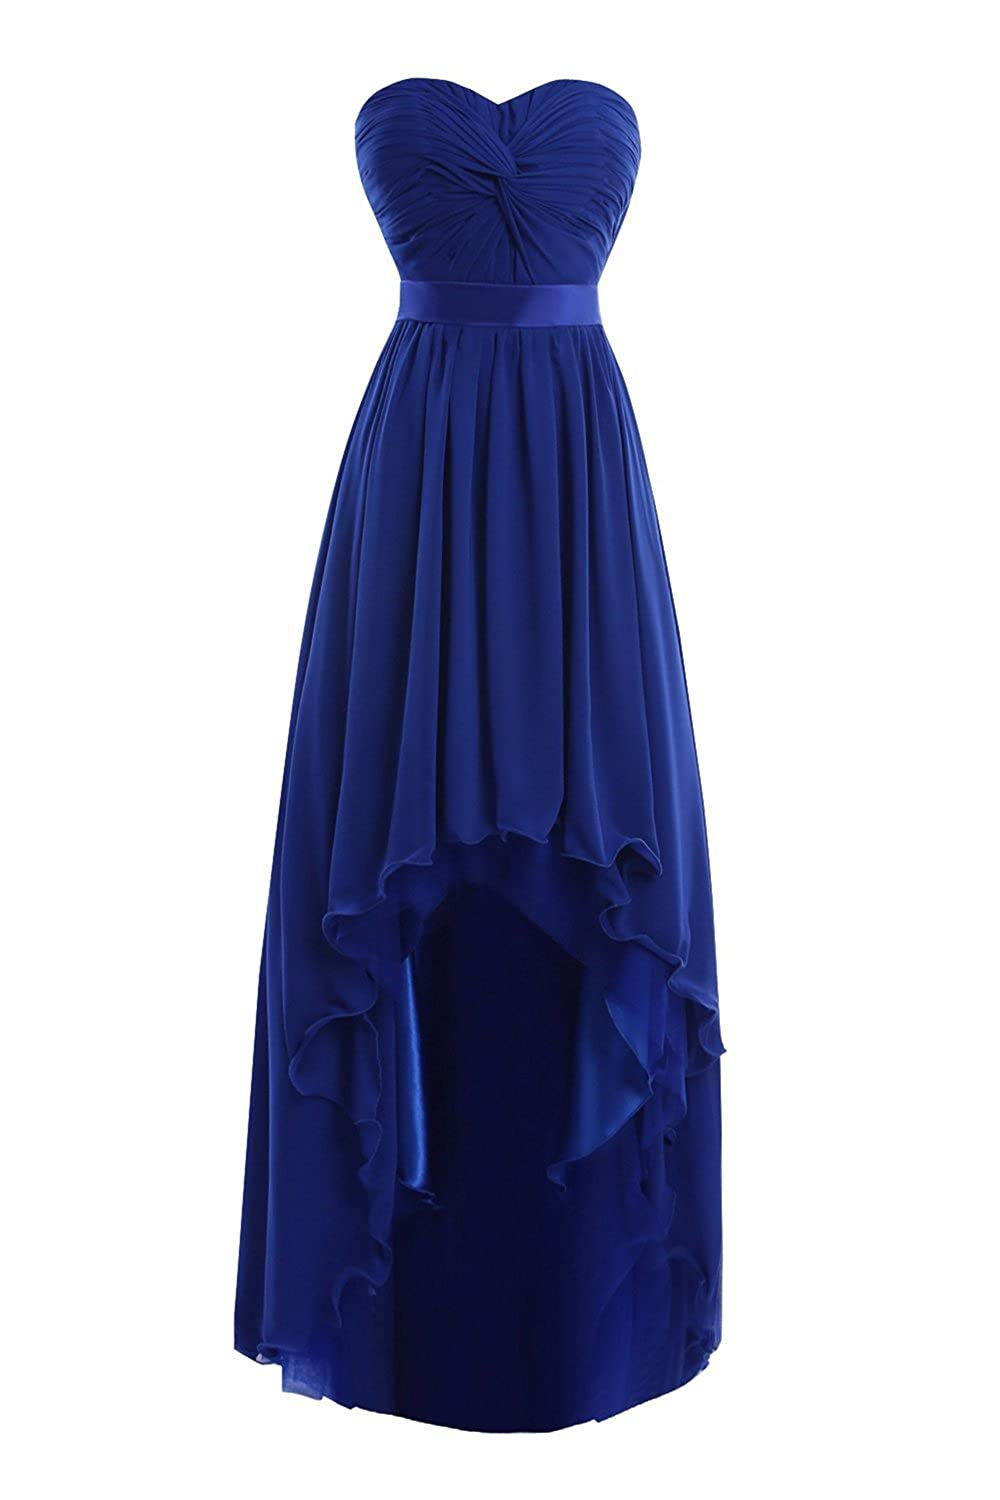 Fanciest Women' Summer Chiffon High Low Bridesmaid Dresses Wedding Party Gowns Red